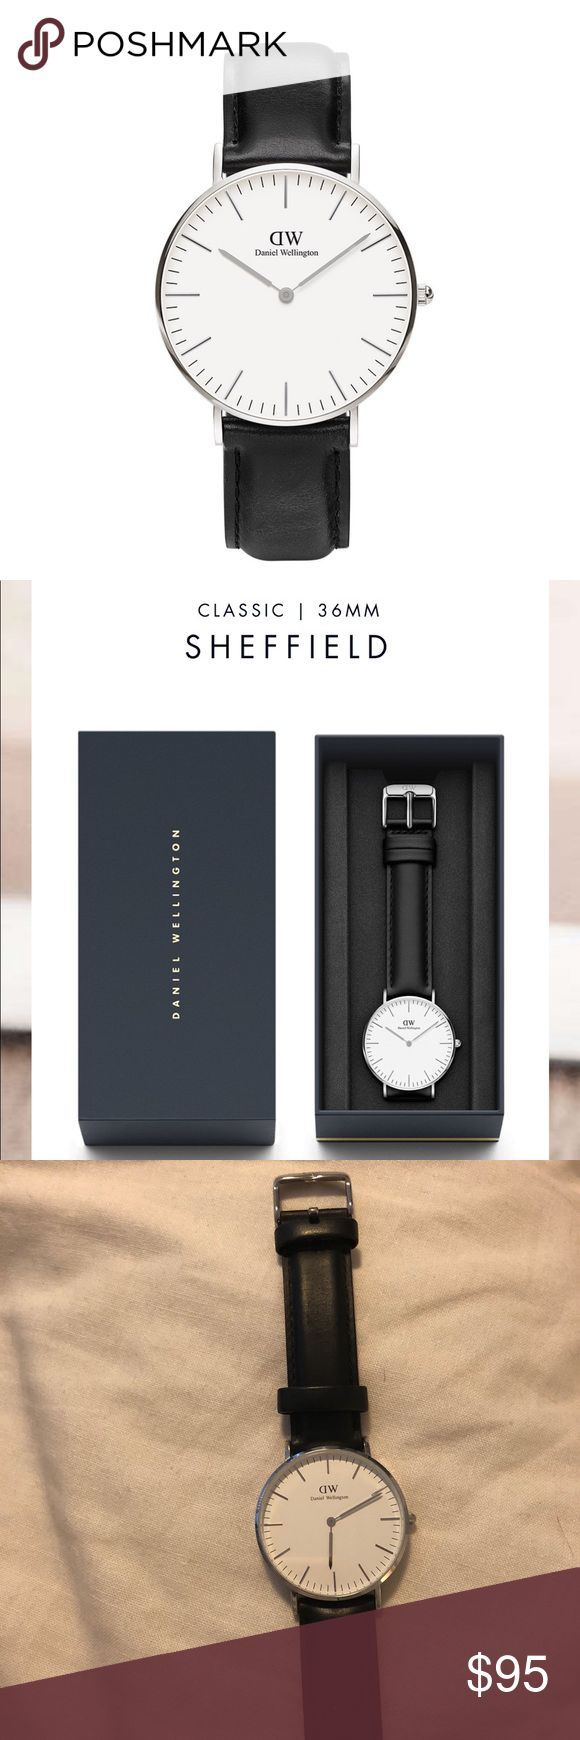 Daniel welling classic Sheffield watch black Black and silver Daniel Wellington Sheffield watch. I have 2 Daniel Wellington watches for sale. This listing is for 1 and there is another listing for the other but I'd be happy to sell them together for a great price. I wore each of the watches about twice so they are in fantastic condition. See photos. No trades. This silver face watch is 36mm and has a black strap. Priced to sell, no lowball offers. If you are interested in both, please bundle…